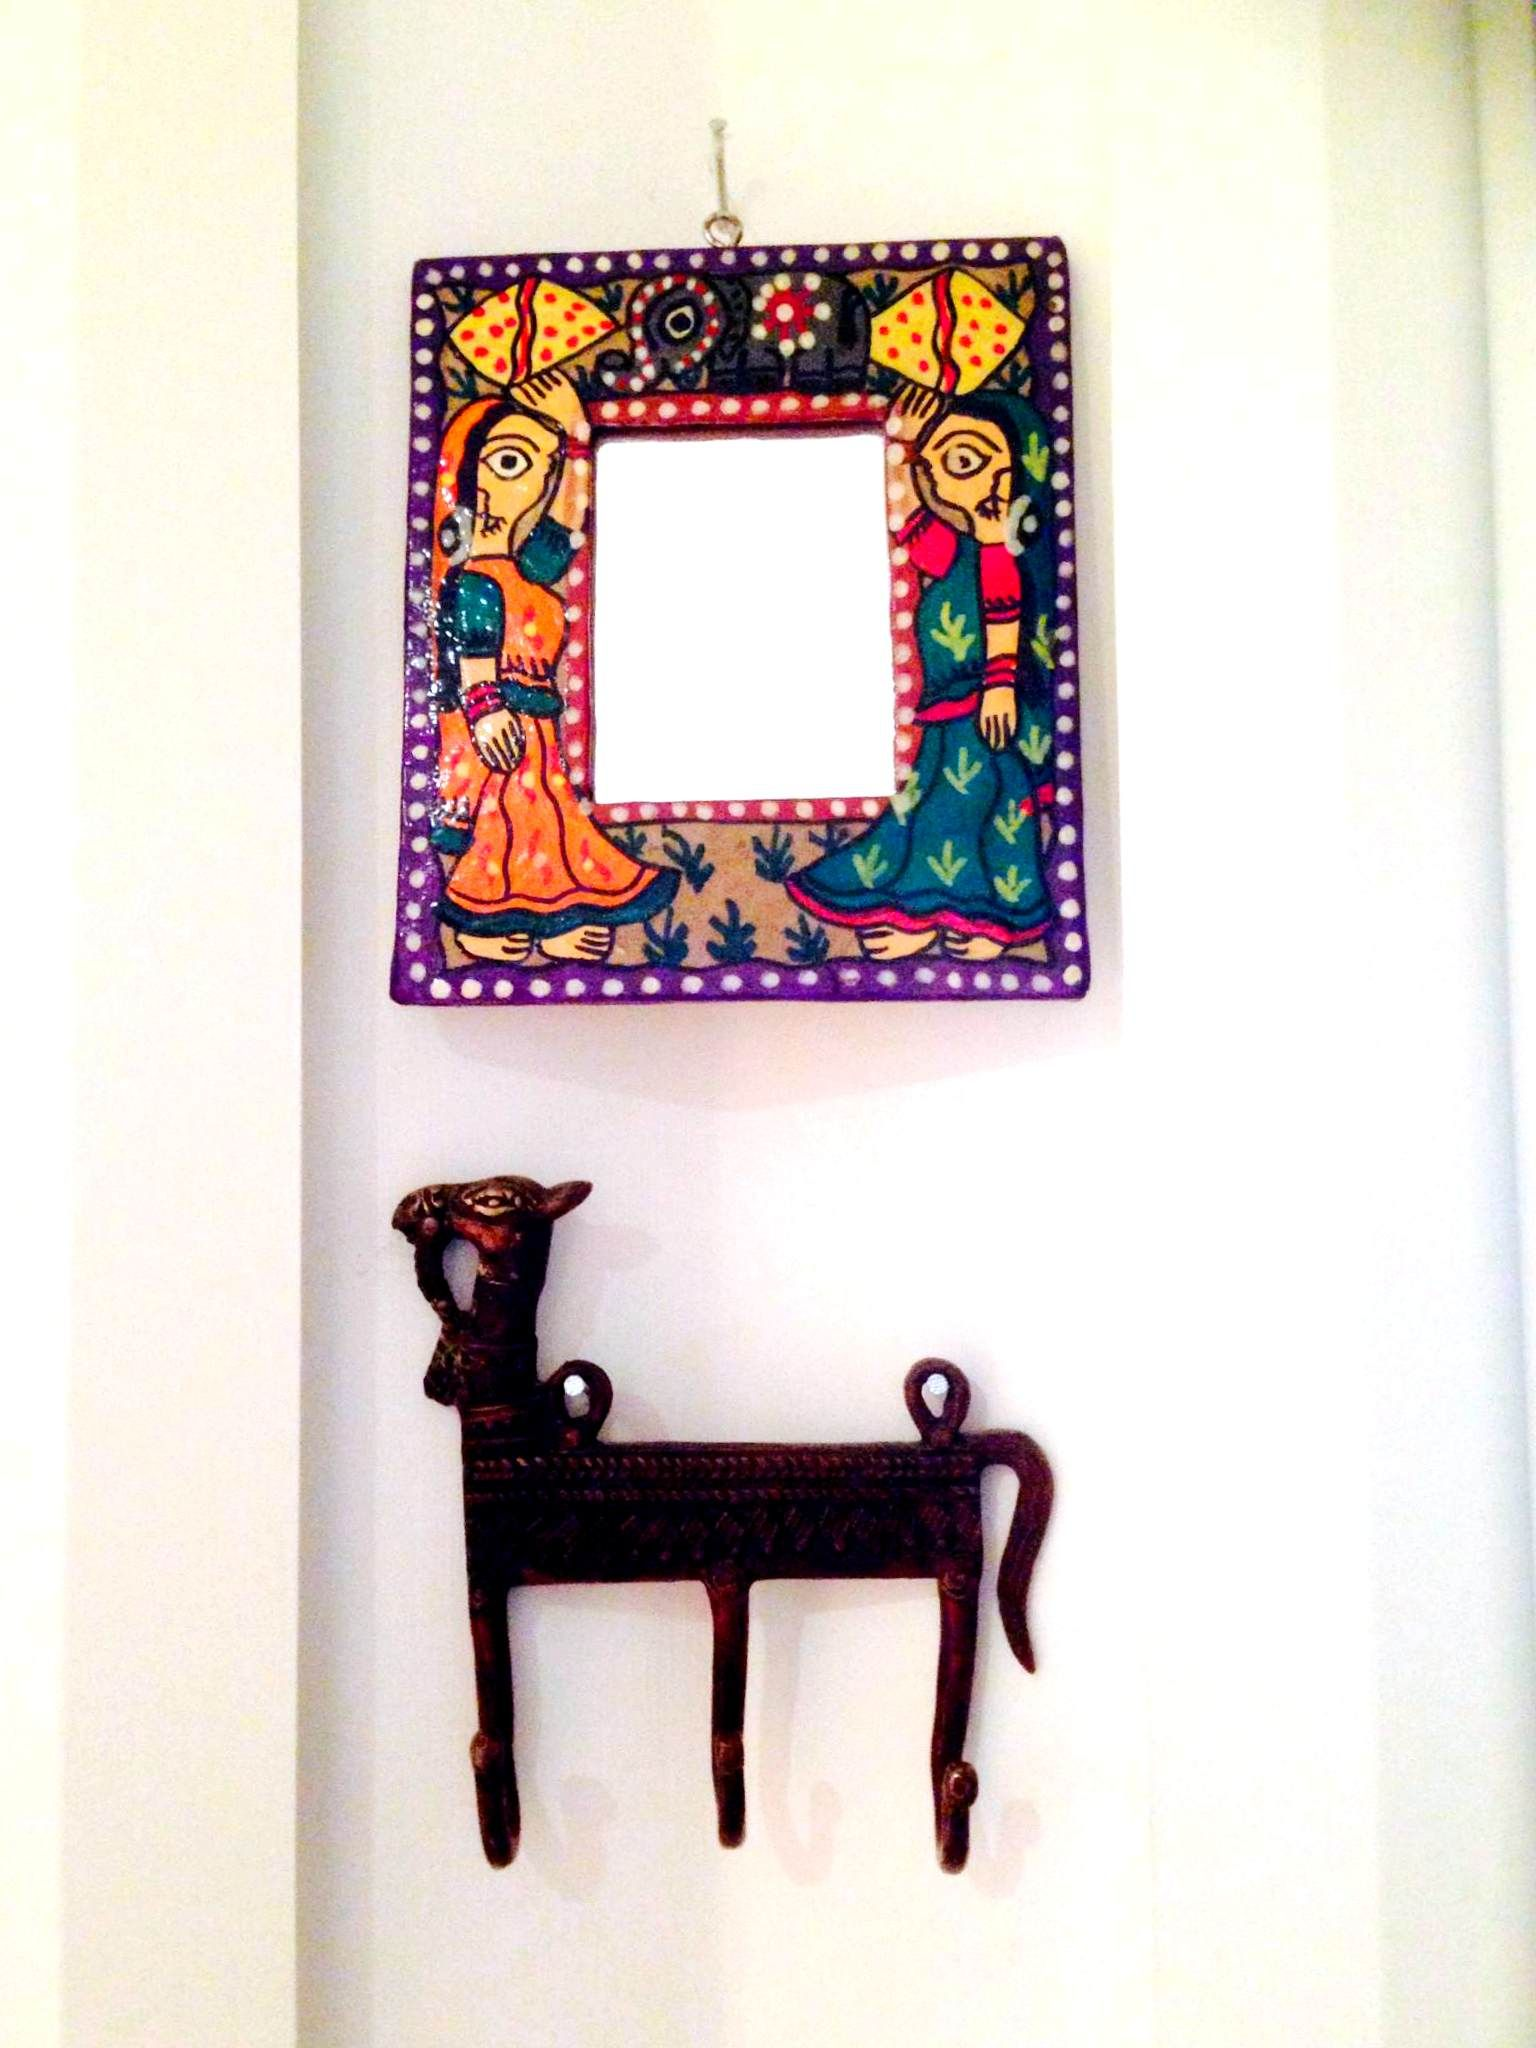 Janakpuri hand painted mirror frame £8.99 | biya | Pinterest | Paint ...